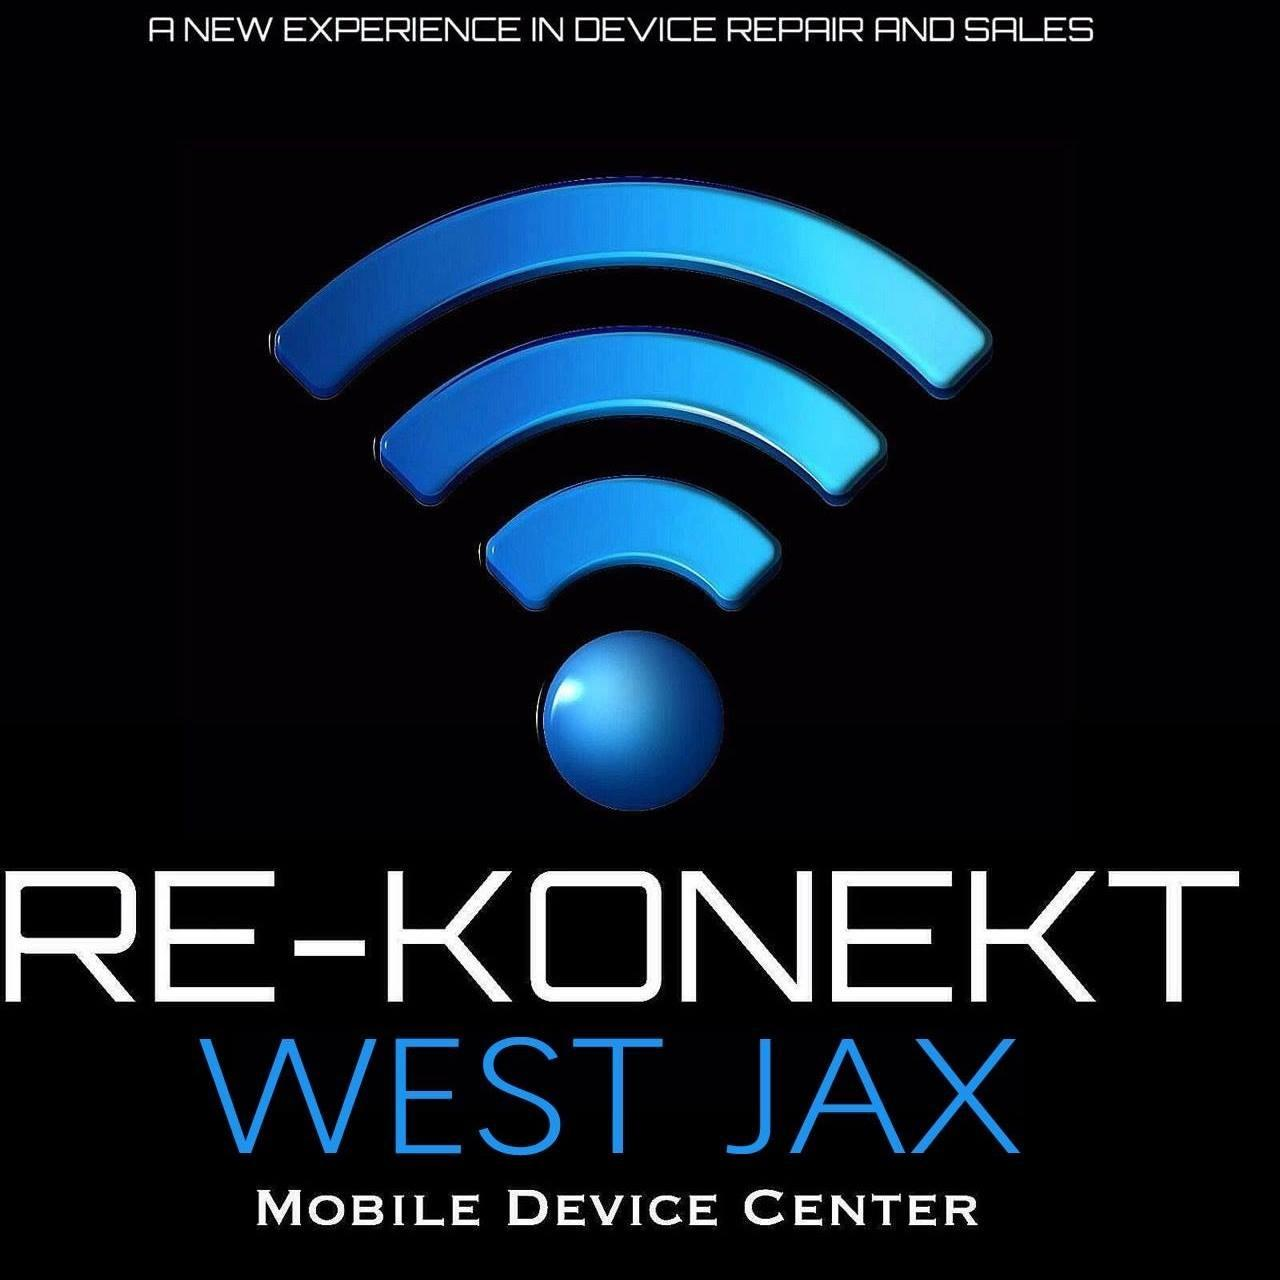 Re-Konekt Cellphone And Device Repair